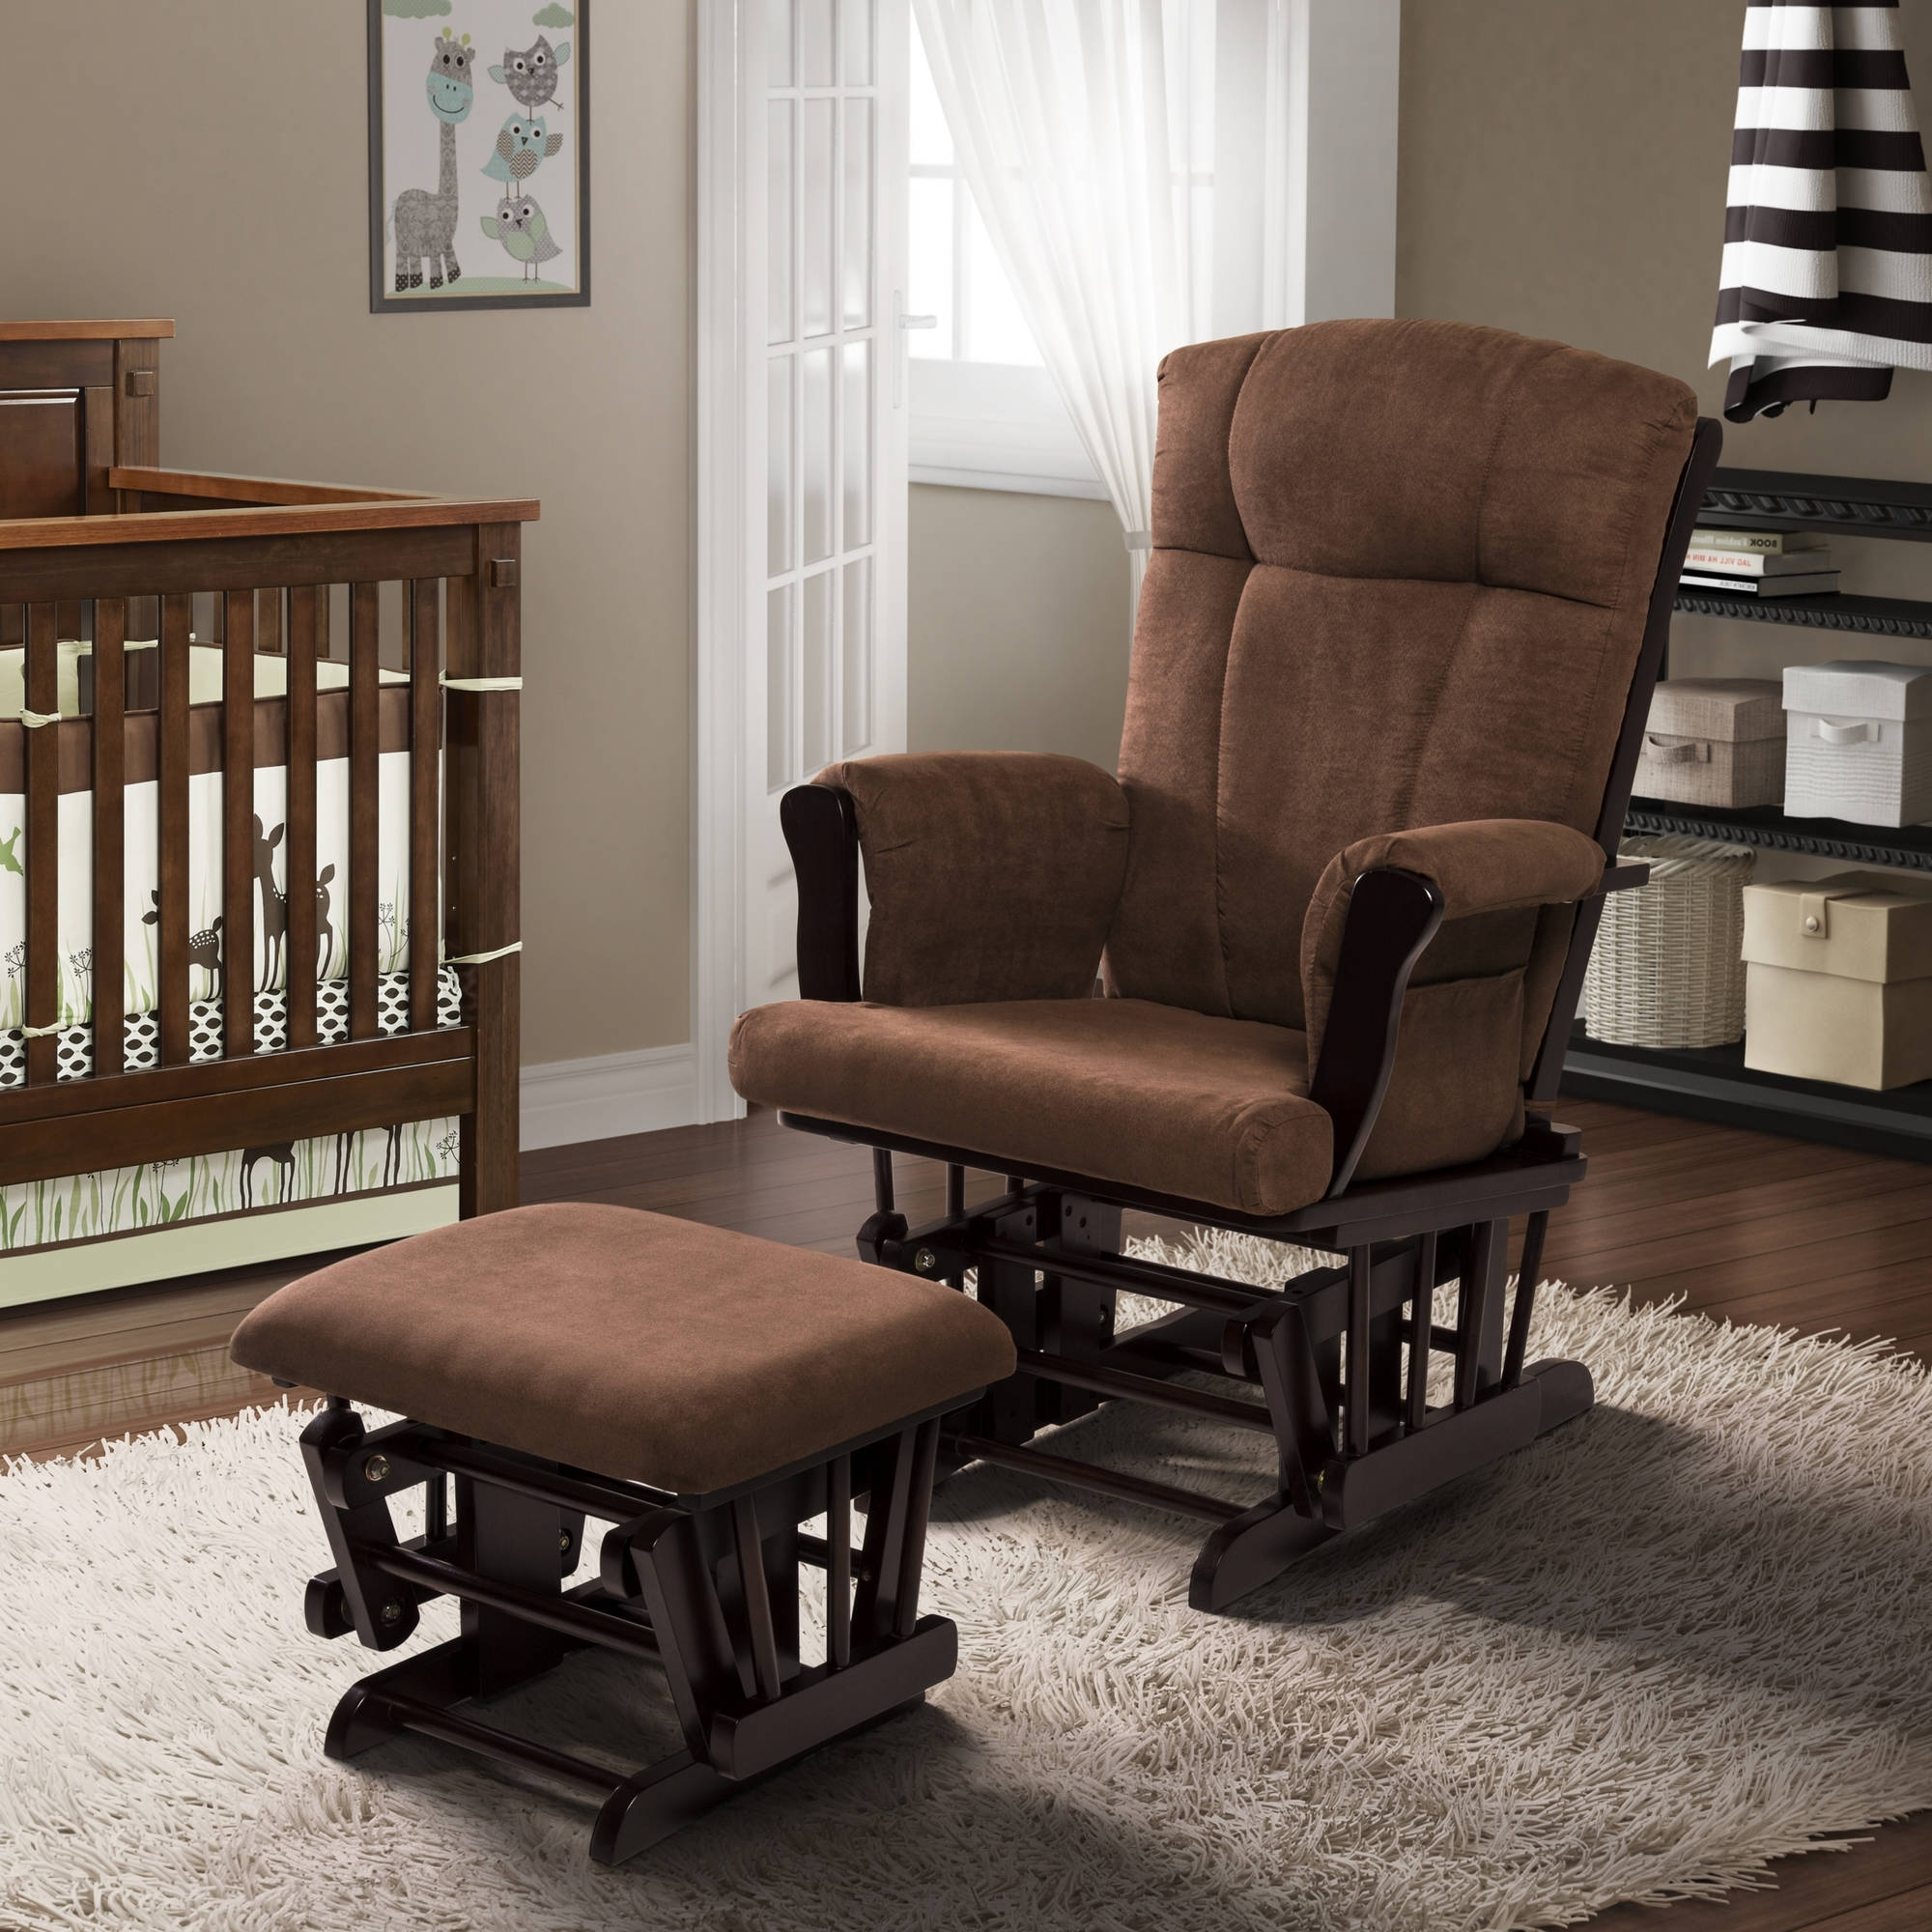 Walmart Rocking Chairs For Famous Baby Relax Hadley Double Rocker Dark Taupe – Walmart (View 9 of 15)